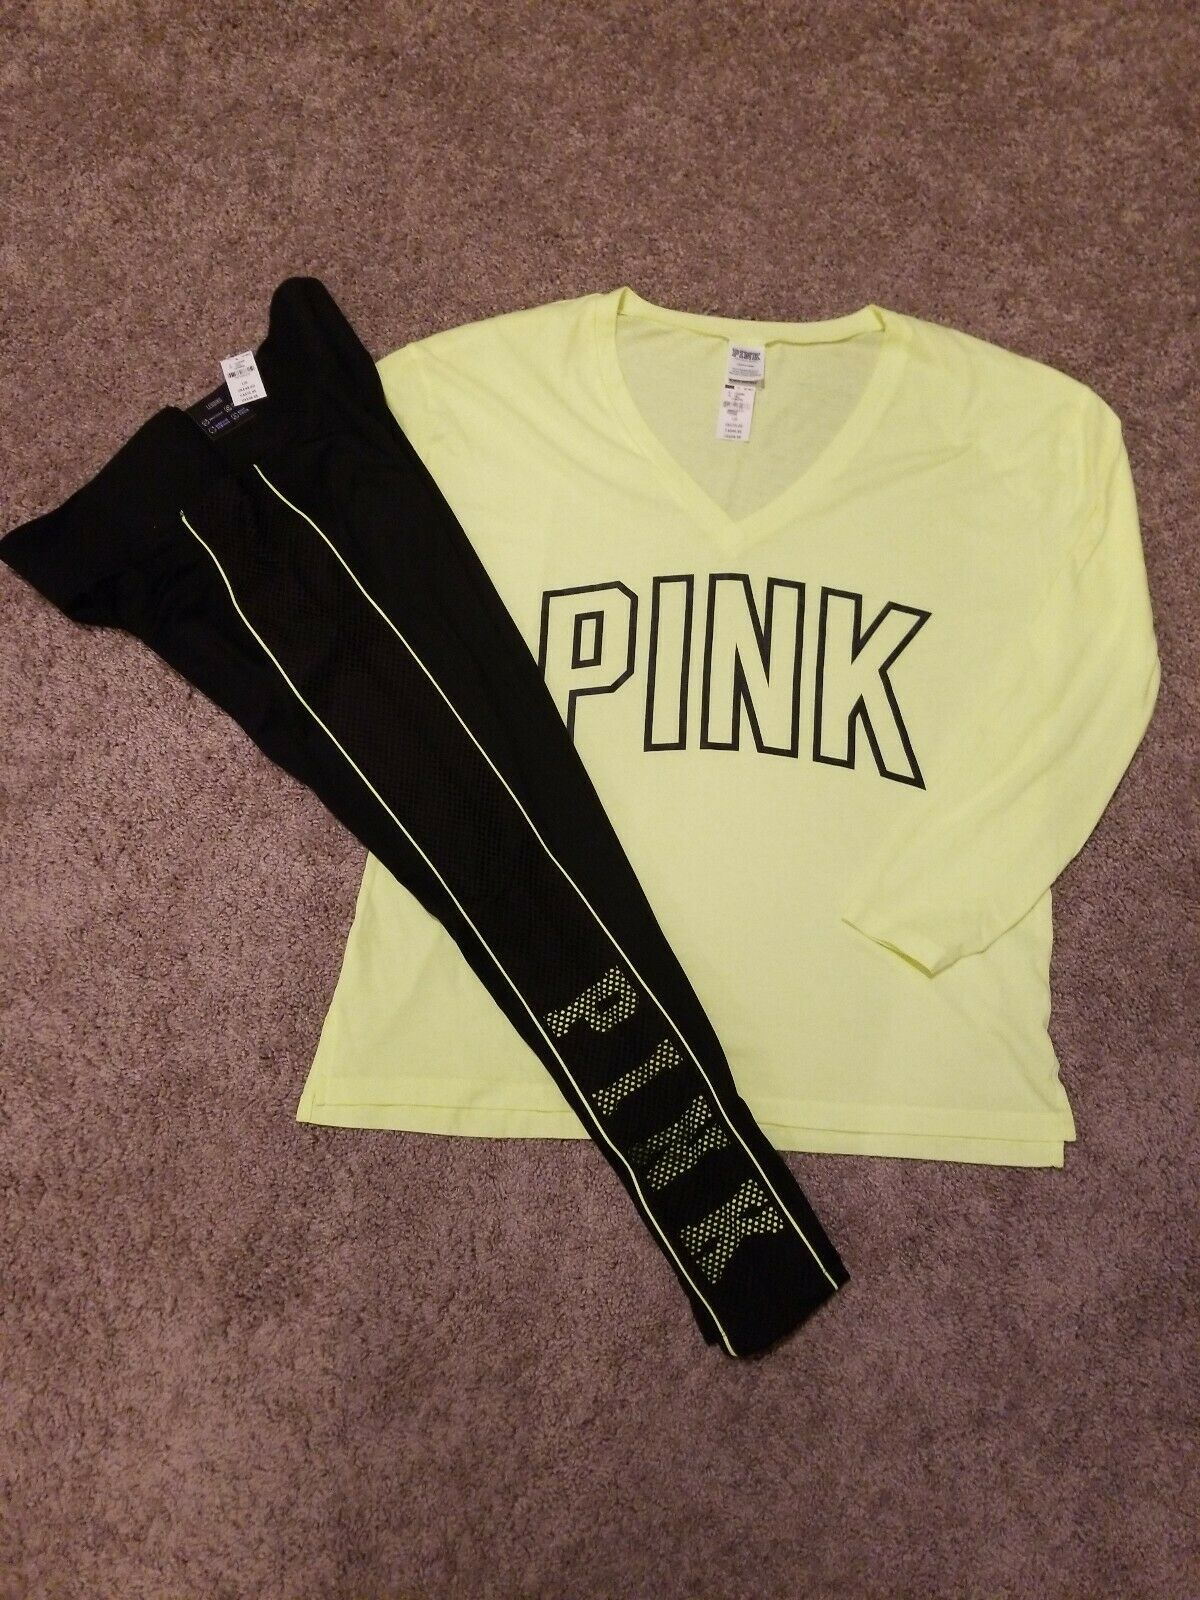 Victoria Secret Pink High Waist Ultimate Leggings Outfit Large NWT L